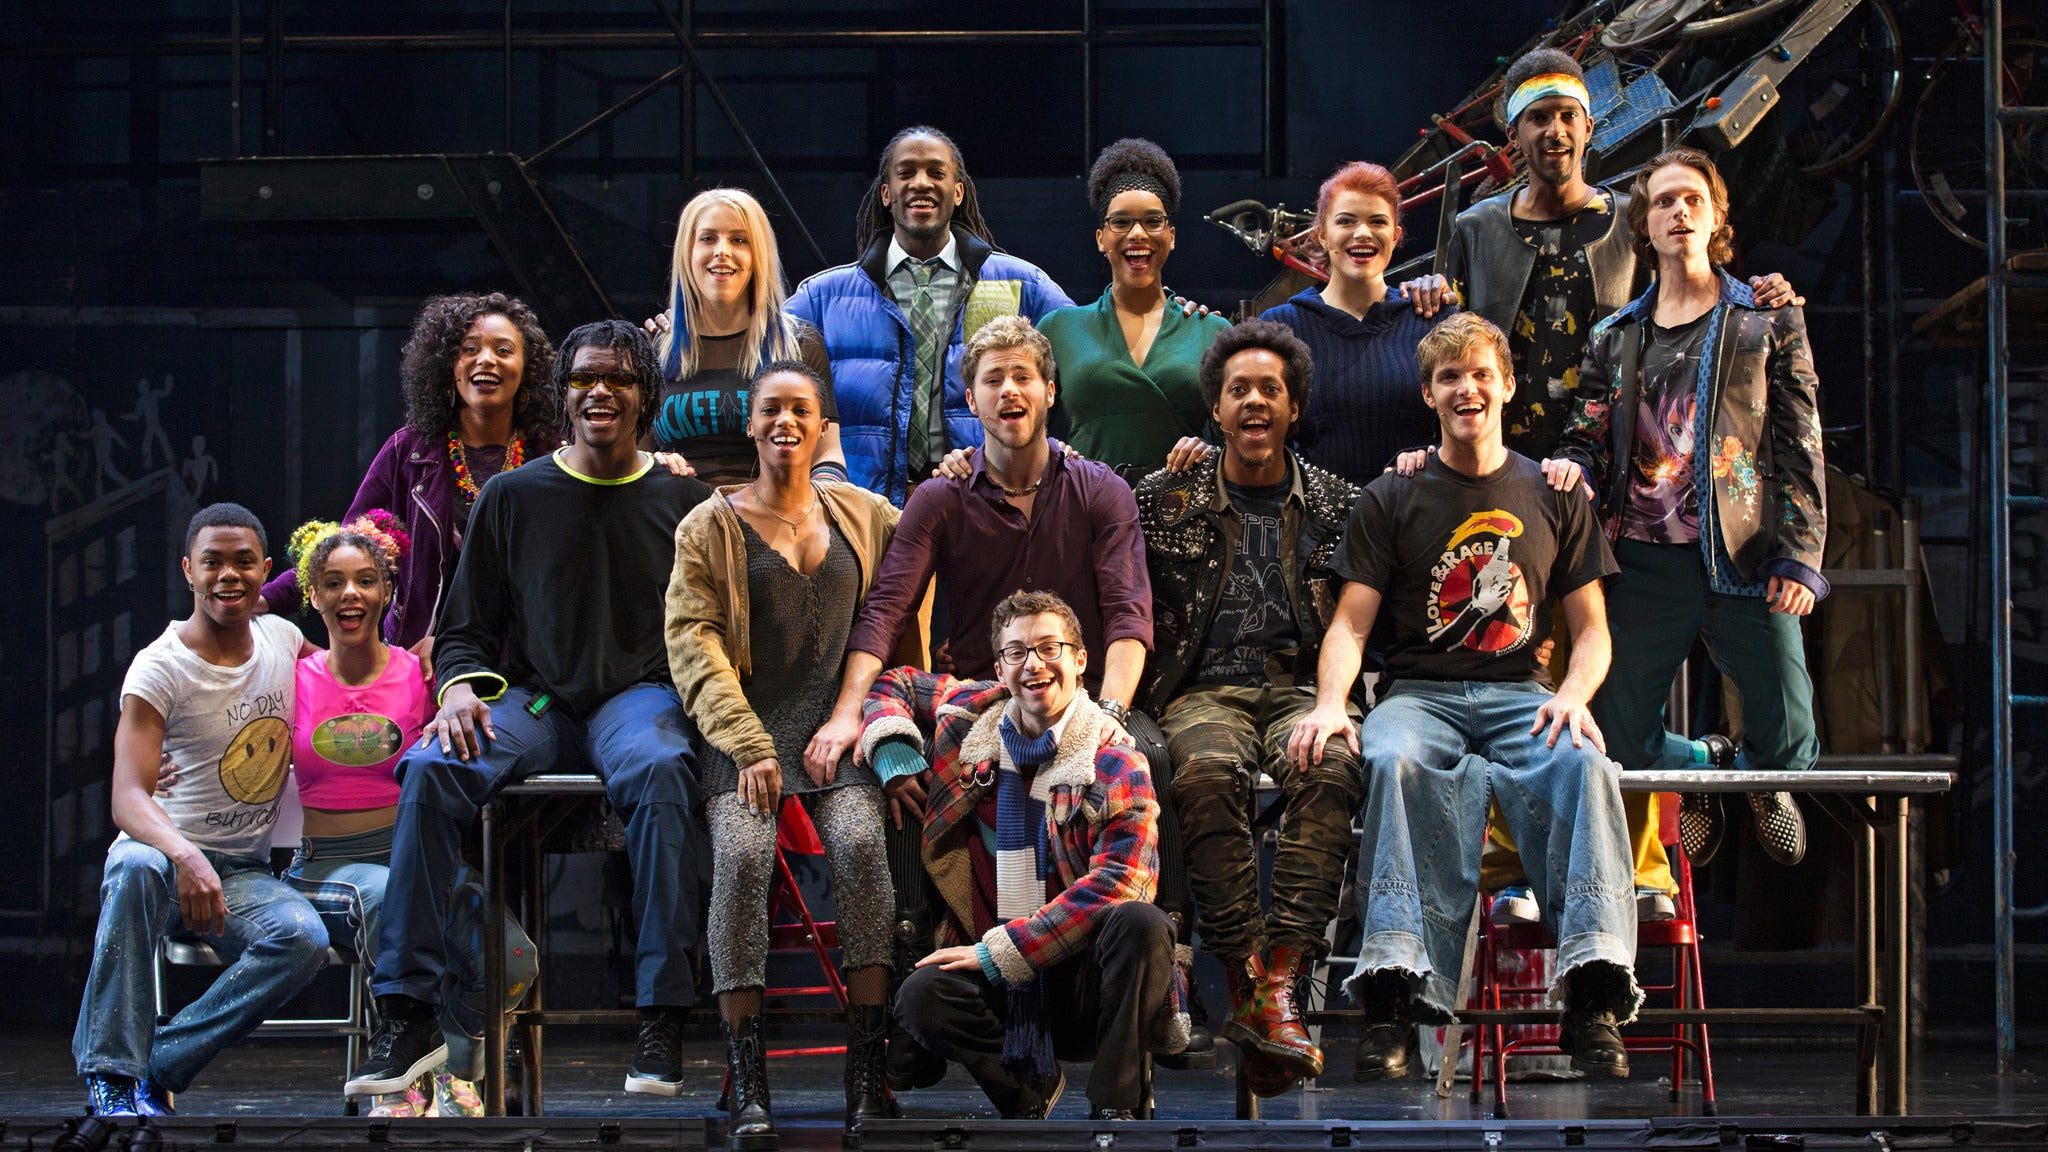 Rent (Chicago) at James M. Nederlander Theatre - Chicago, IL 60601